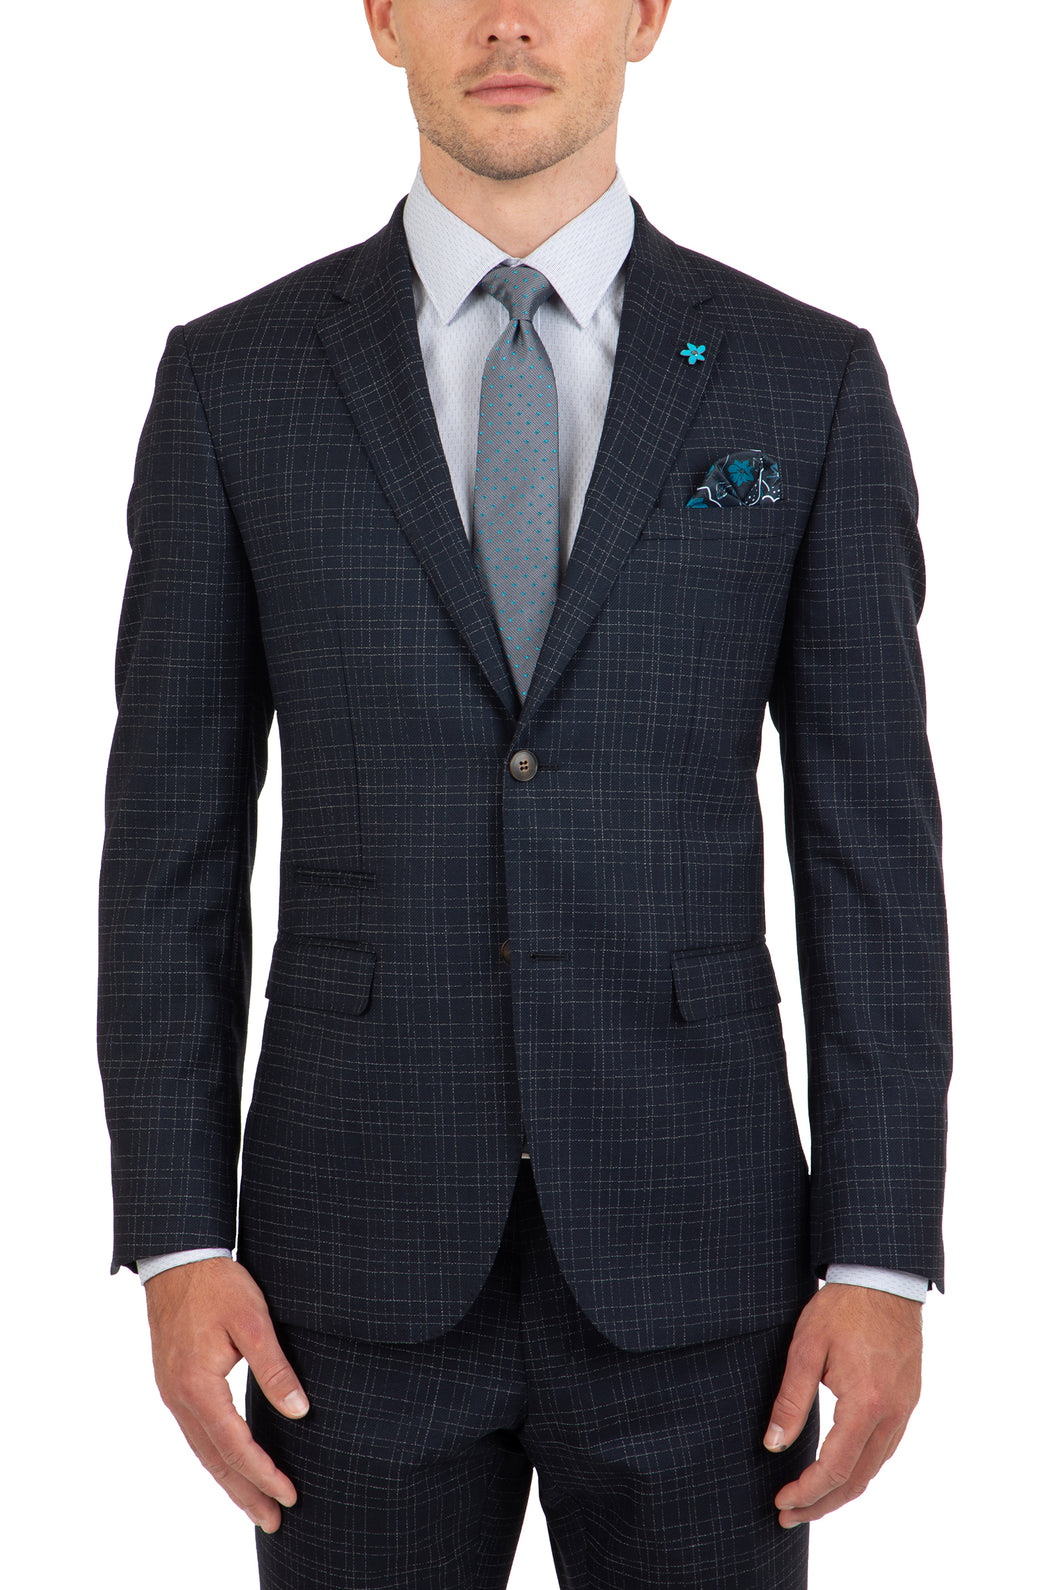 Gibson FGK642 Beta/Caper Suit - Navy Check